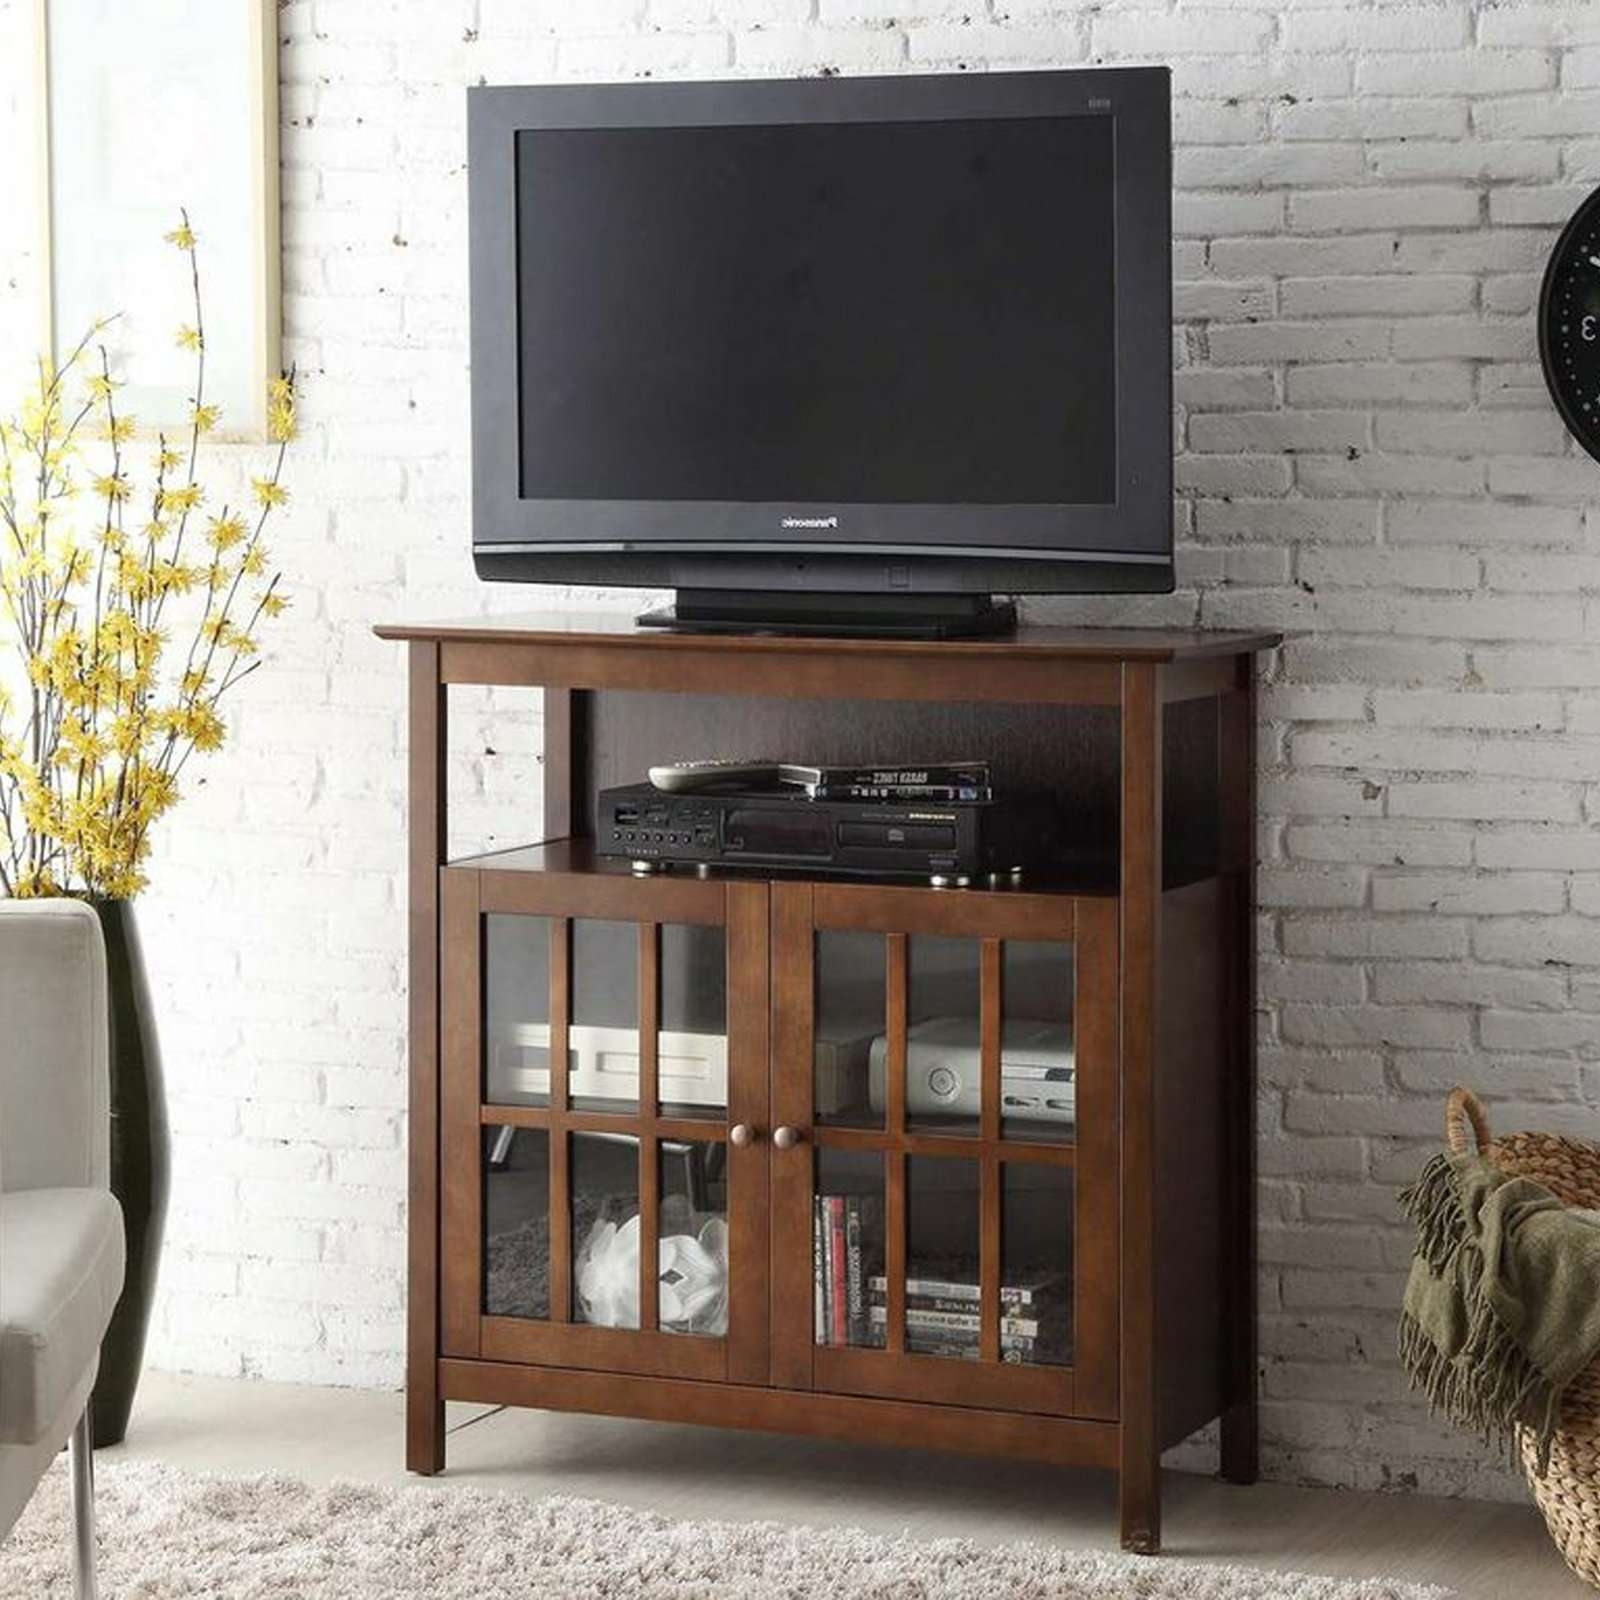 Considerable Tv Also News Archive Similiar Inch Sony Wega Tv Within Corner Tv Stands 40 Inch (View 7 of 20)